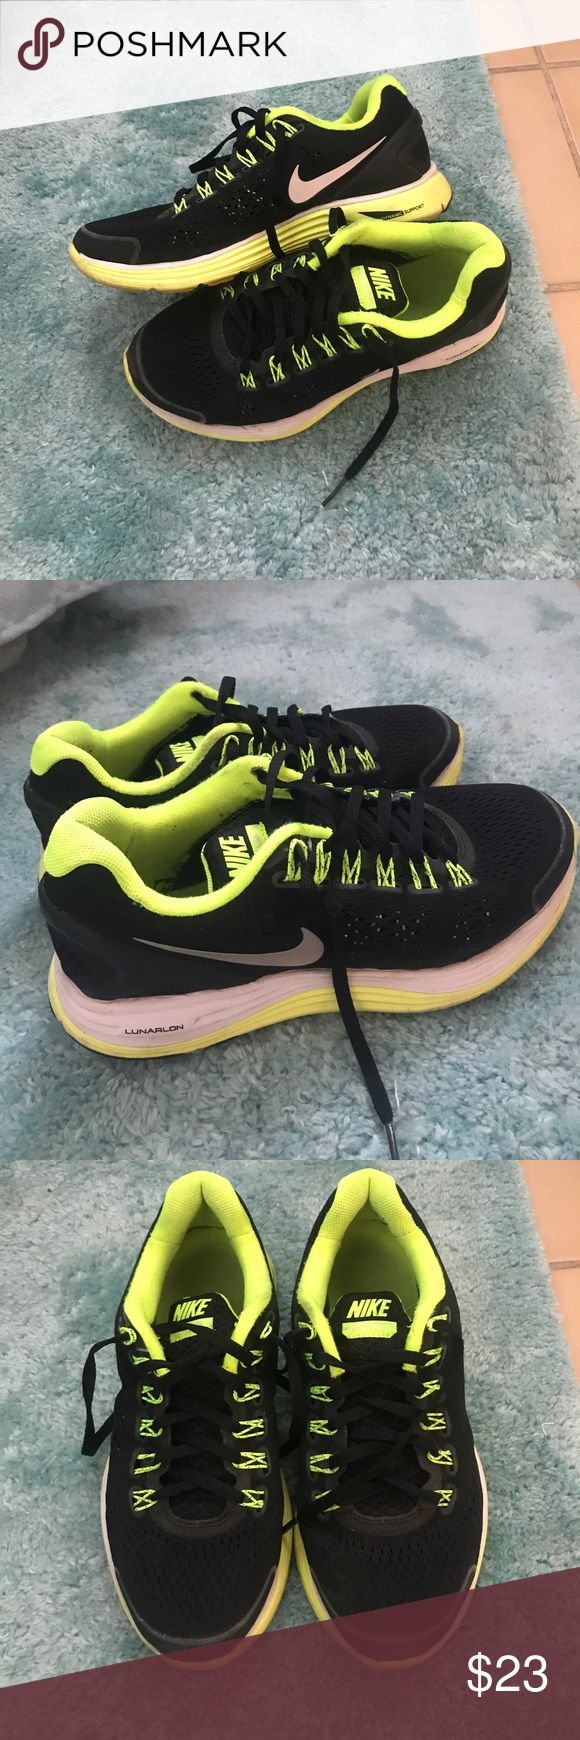 Nike Lunarglides Running Shoes Black and Neon Nike Lunarglide 4. Size 5Y which is 6.5 in women's. Some use but still in good condition! From a smoke and pet free home 💕 Nike Shoes Sneakers